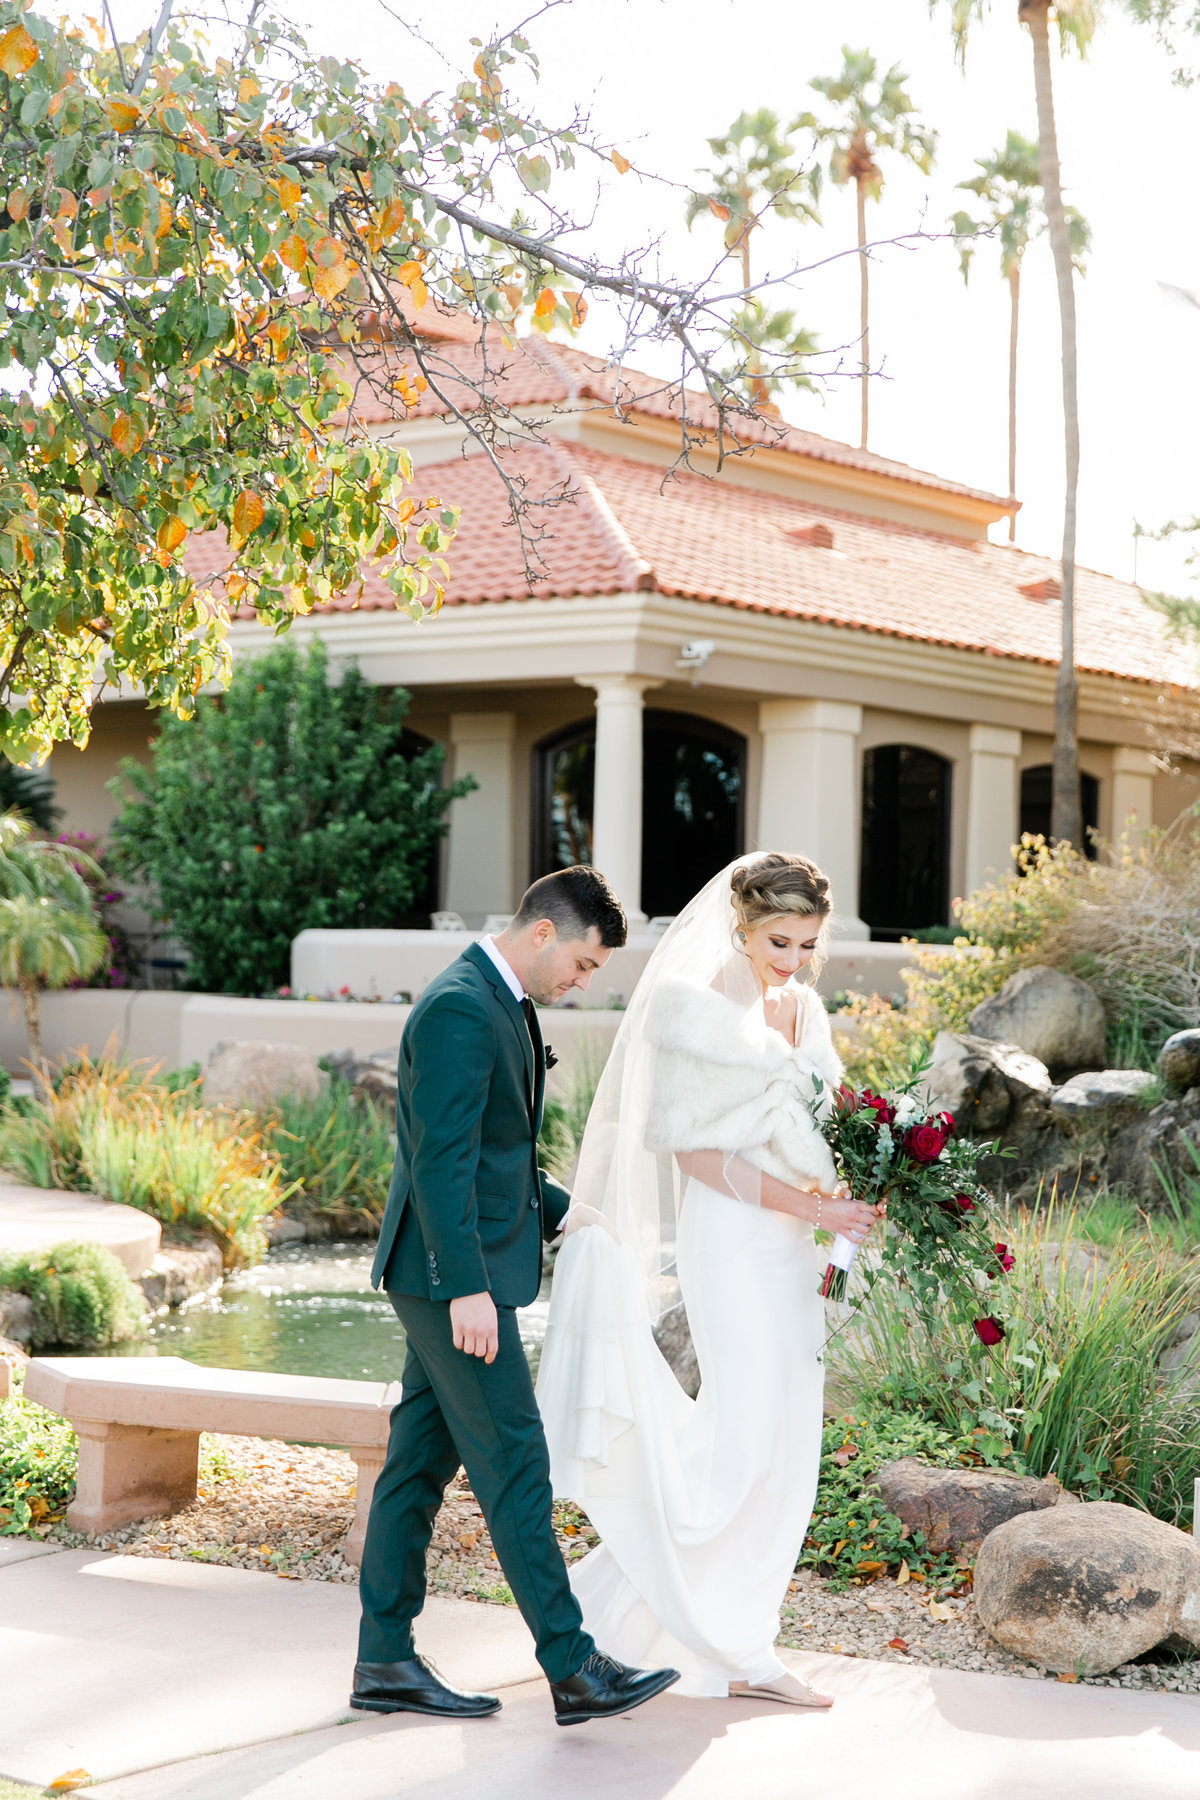 Karlie Colleen Photography - Gilbert Arizona Wedding - Val Vista Lakes - Brynne & Josh-442